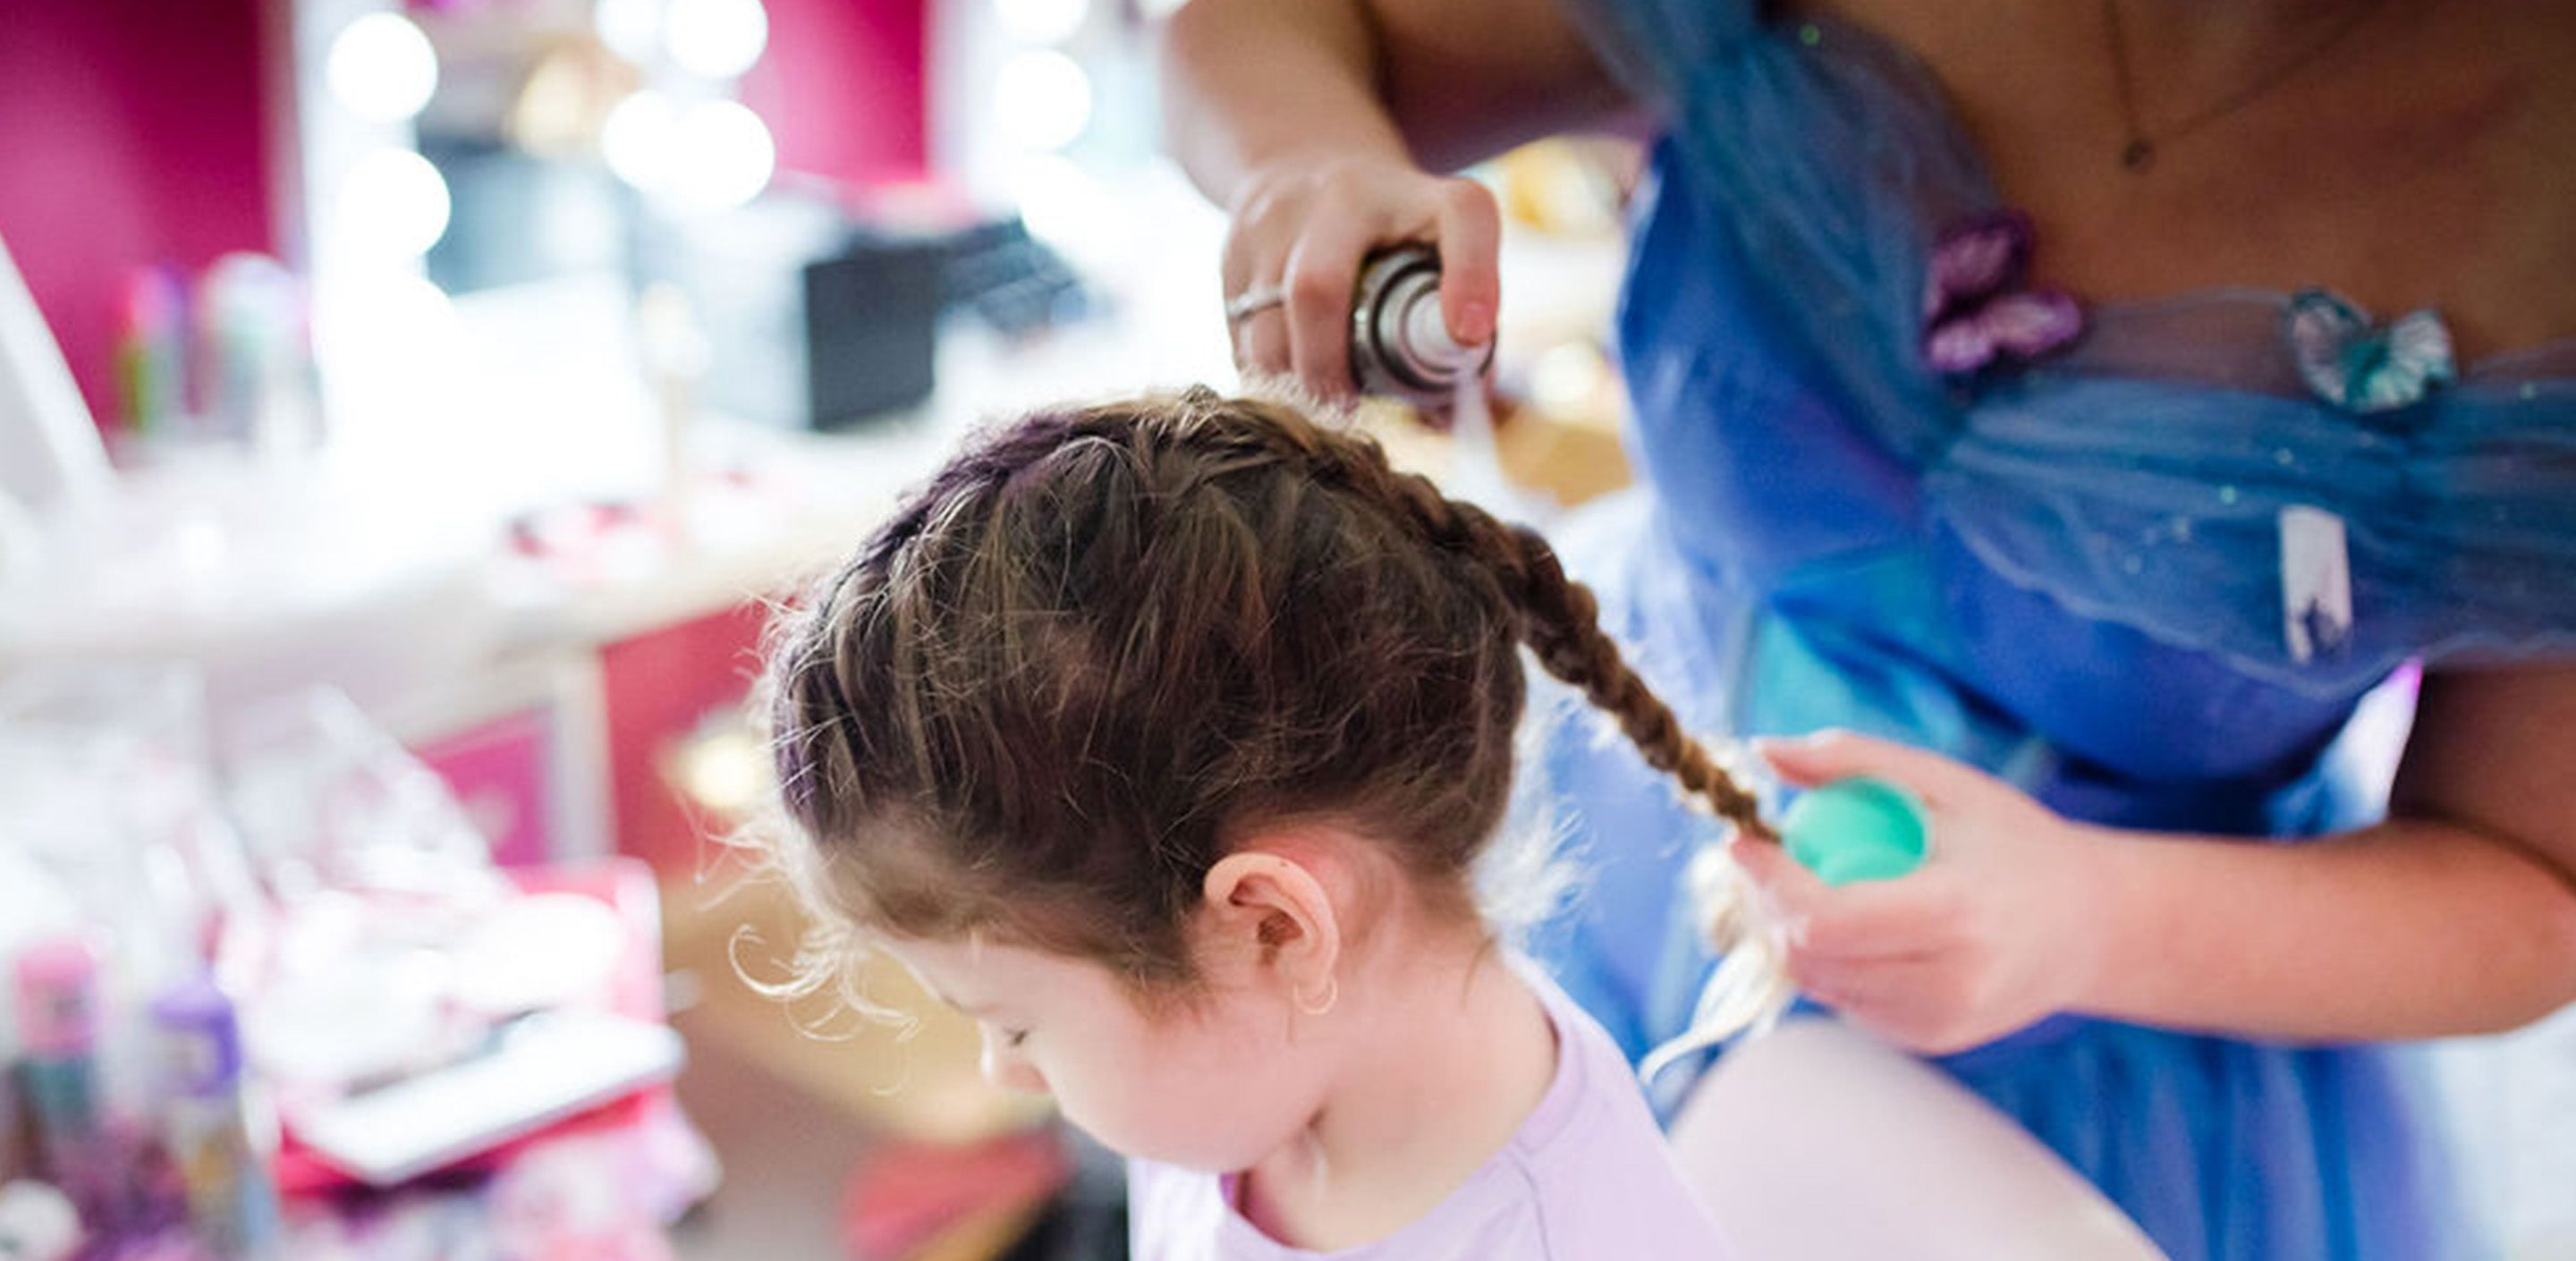 Braid tutorial classes for mum and daughter gold coast learn to braid class for kids